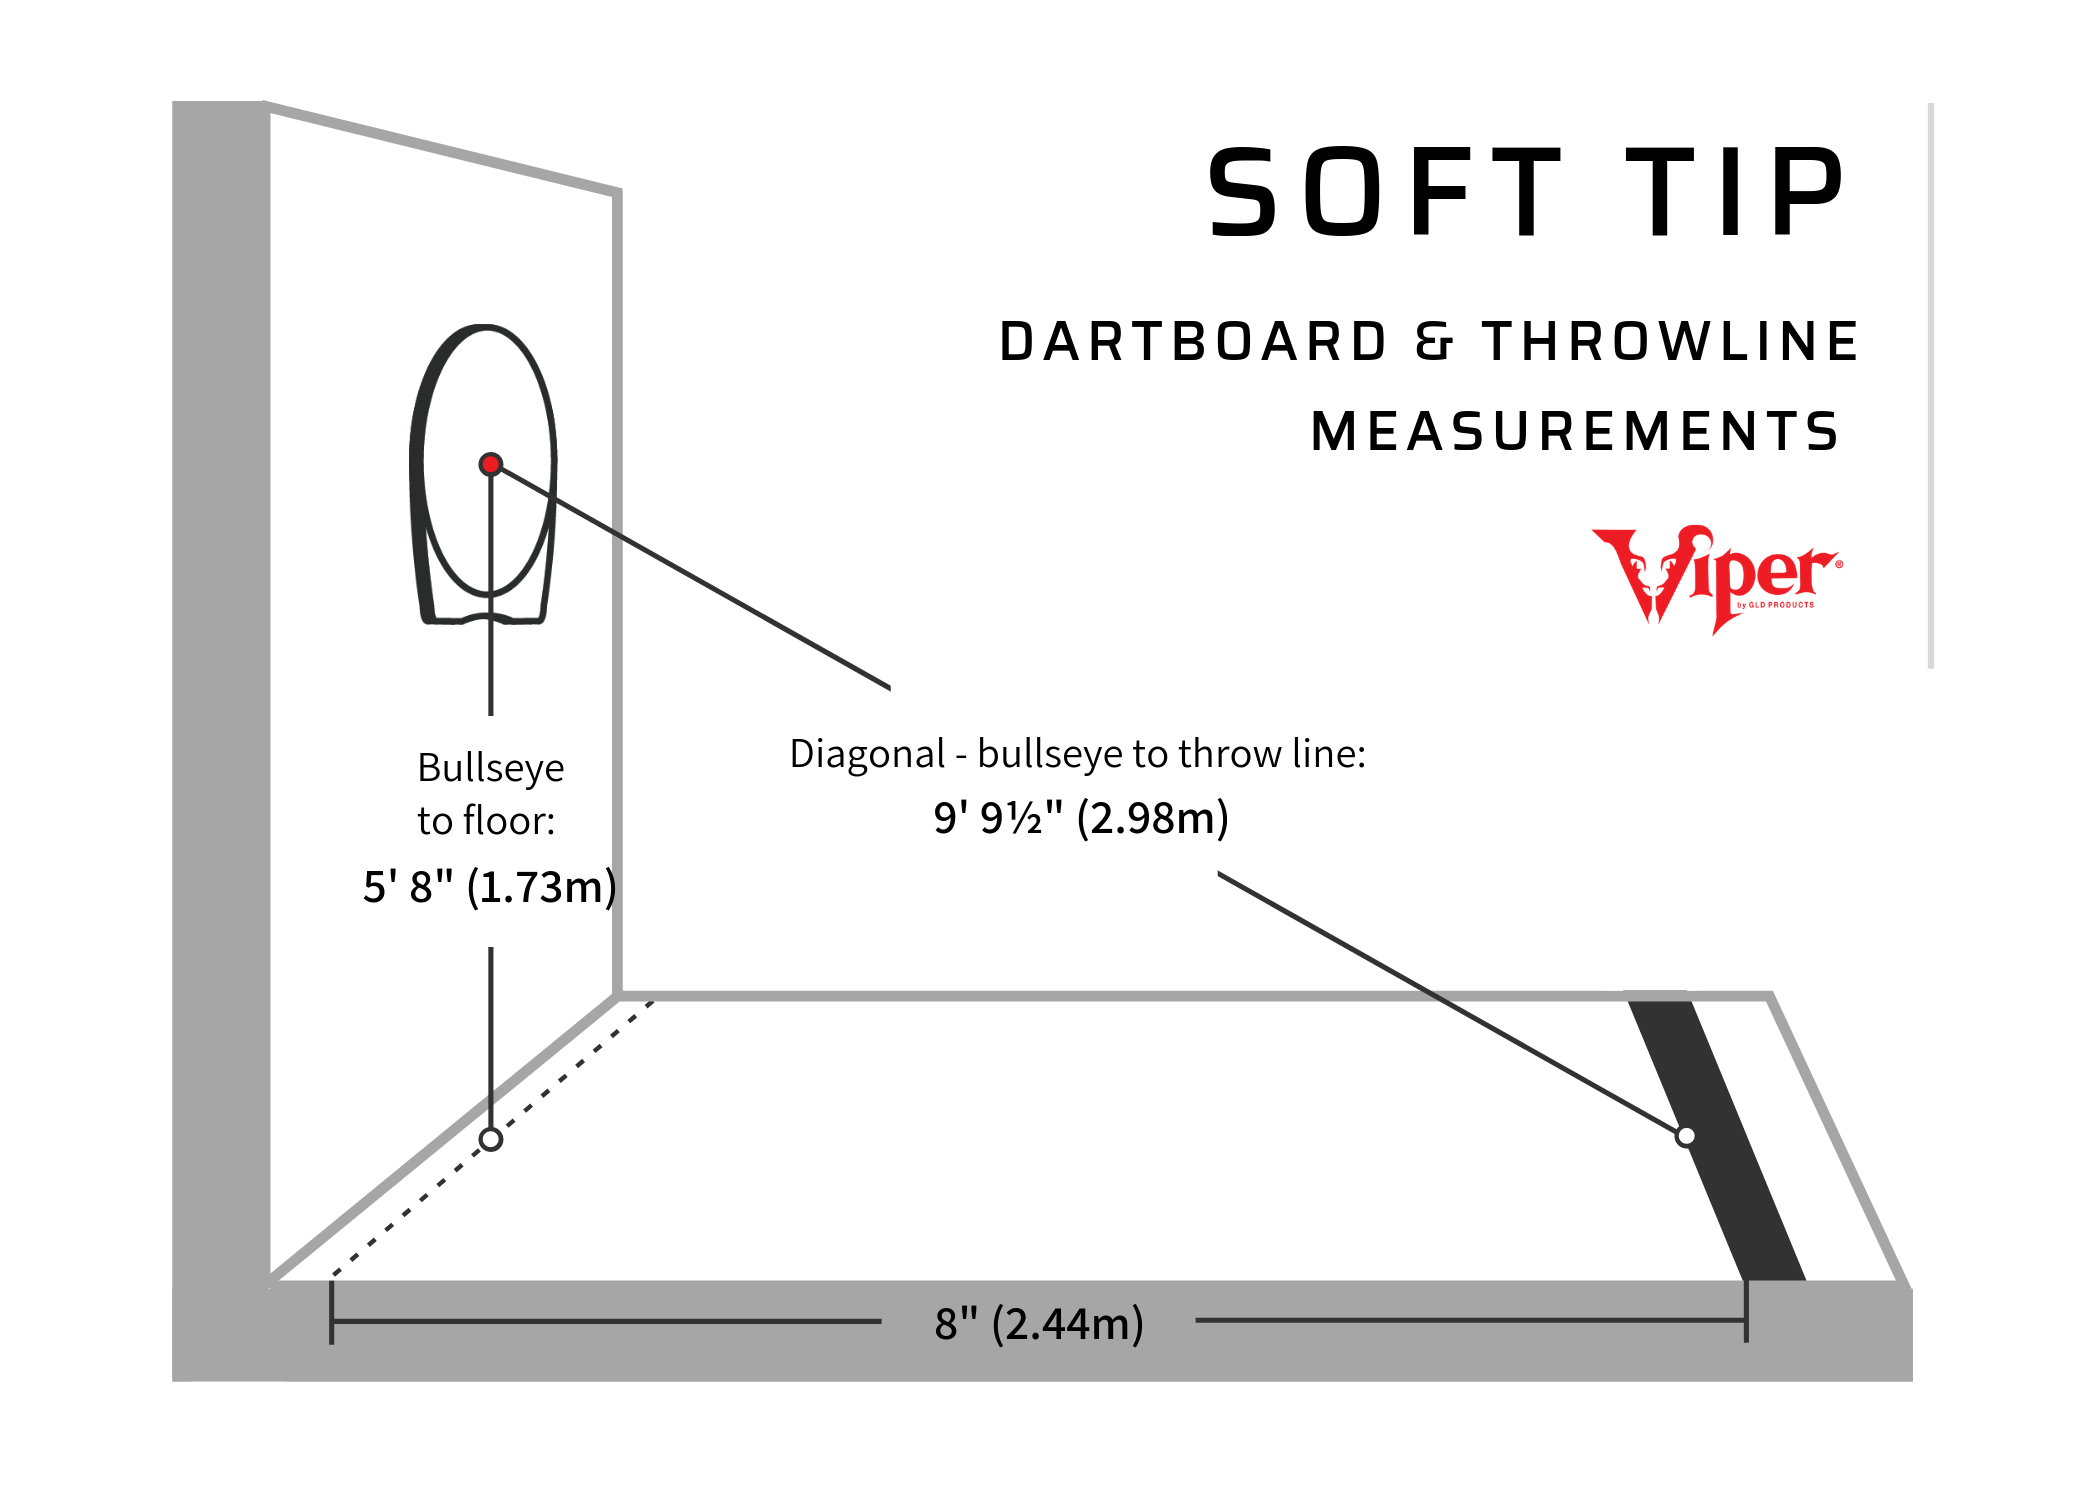 Soft Tip Dartboard and Throwline Measurements